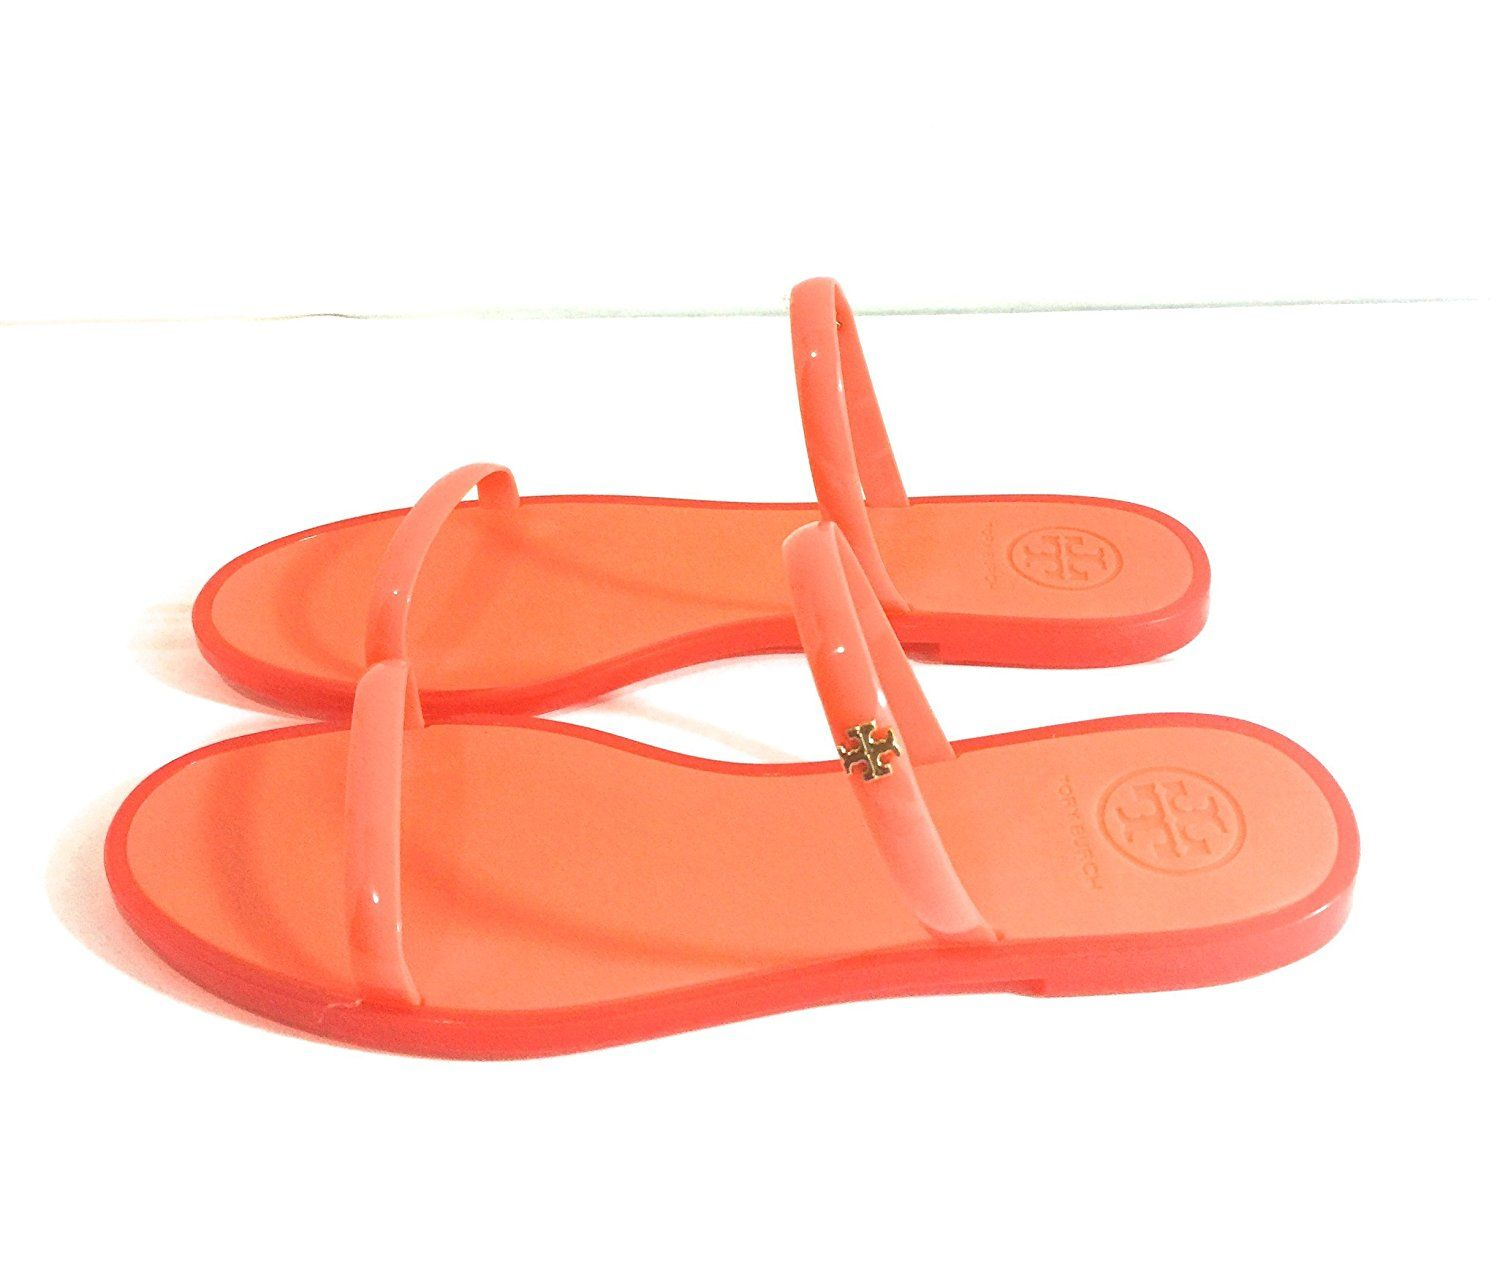 0ac7e8d8a875 ... ireland tory burch womens poppy coral two band jelly slide sandals size  7 2753b a5921